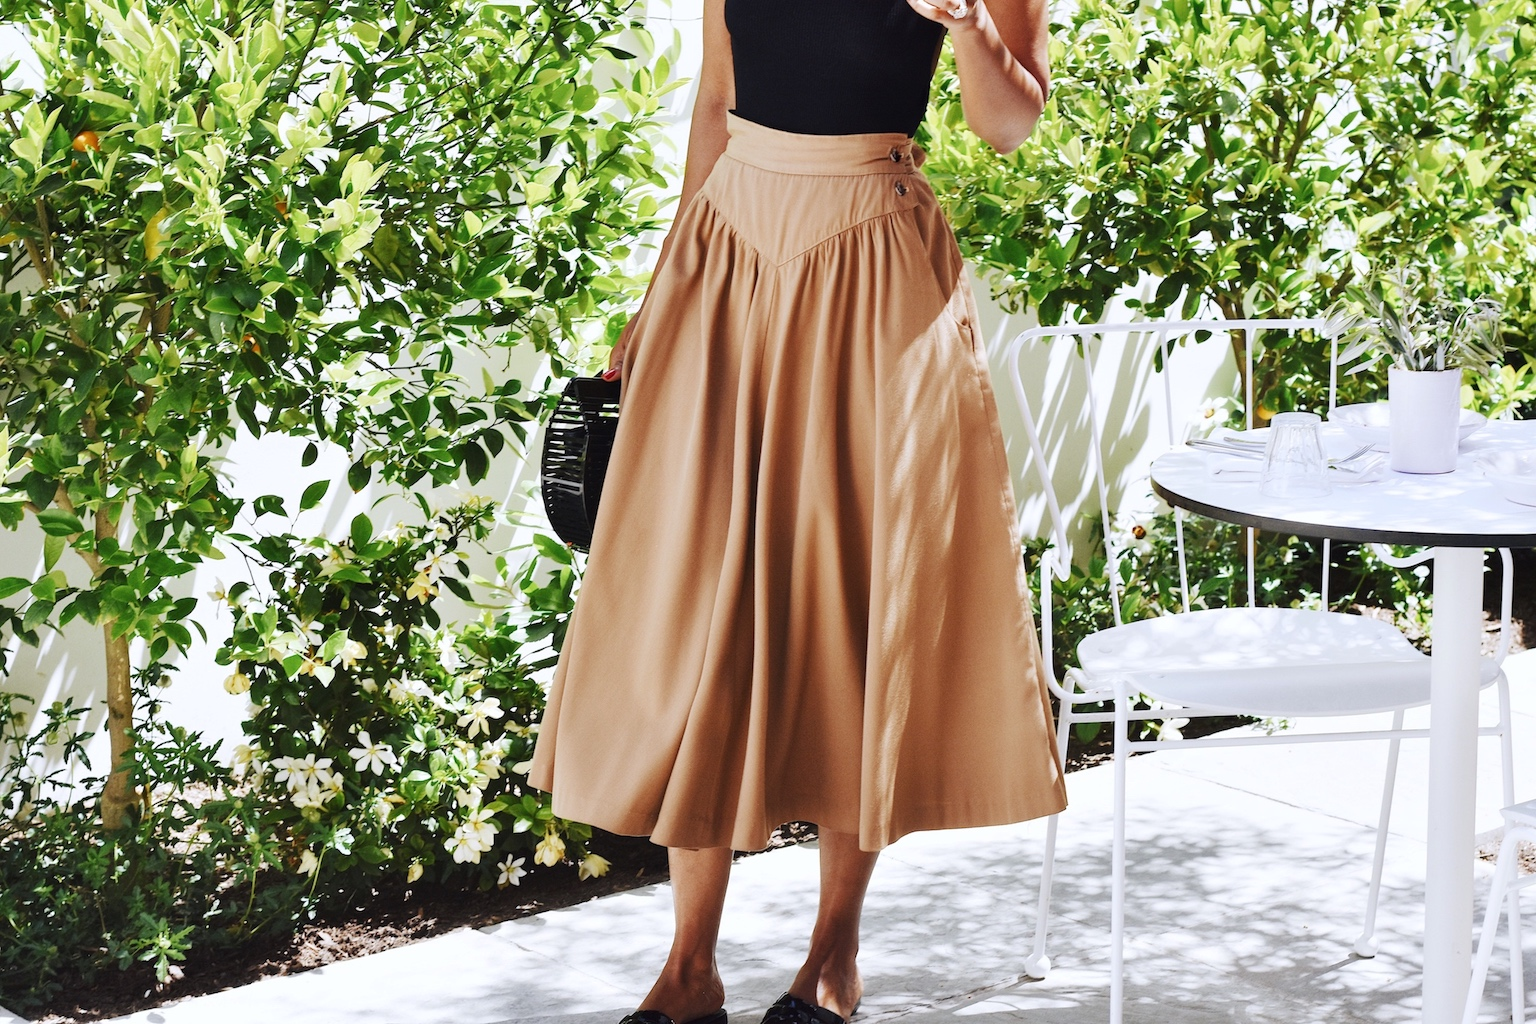 Simple summer outfit with vintage skirt // A Week Of Sophisticated Slow Fashion Outfits With Tennille Murphy From The Tennille Life on The Good Trade